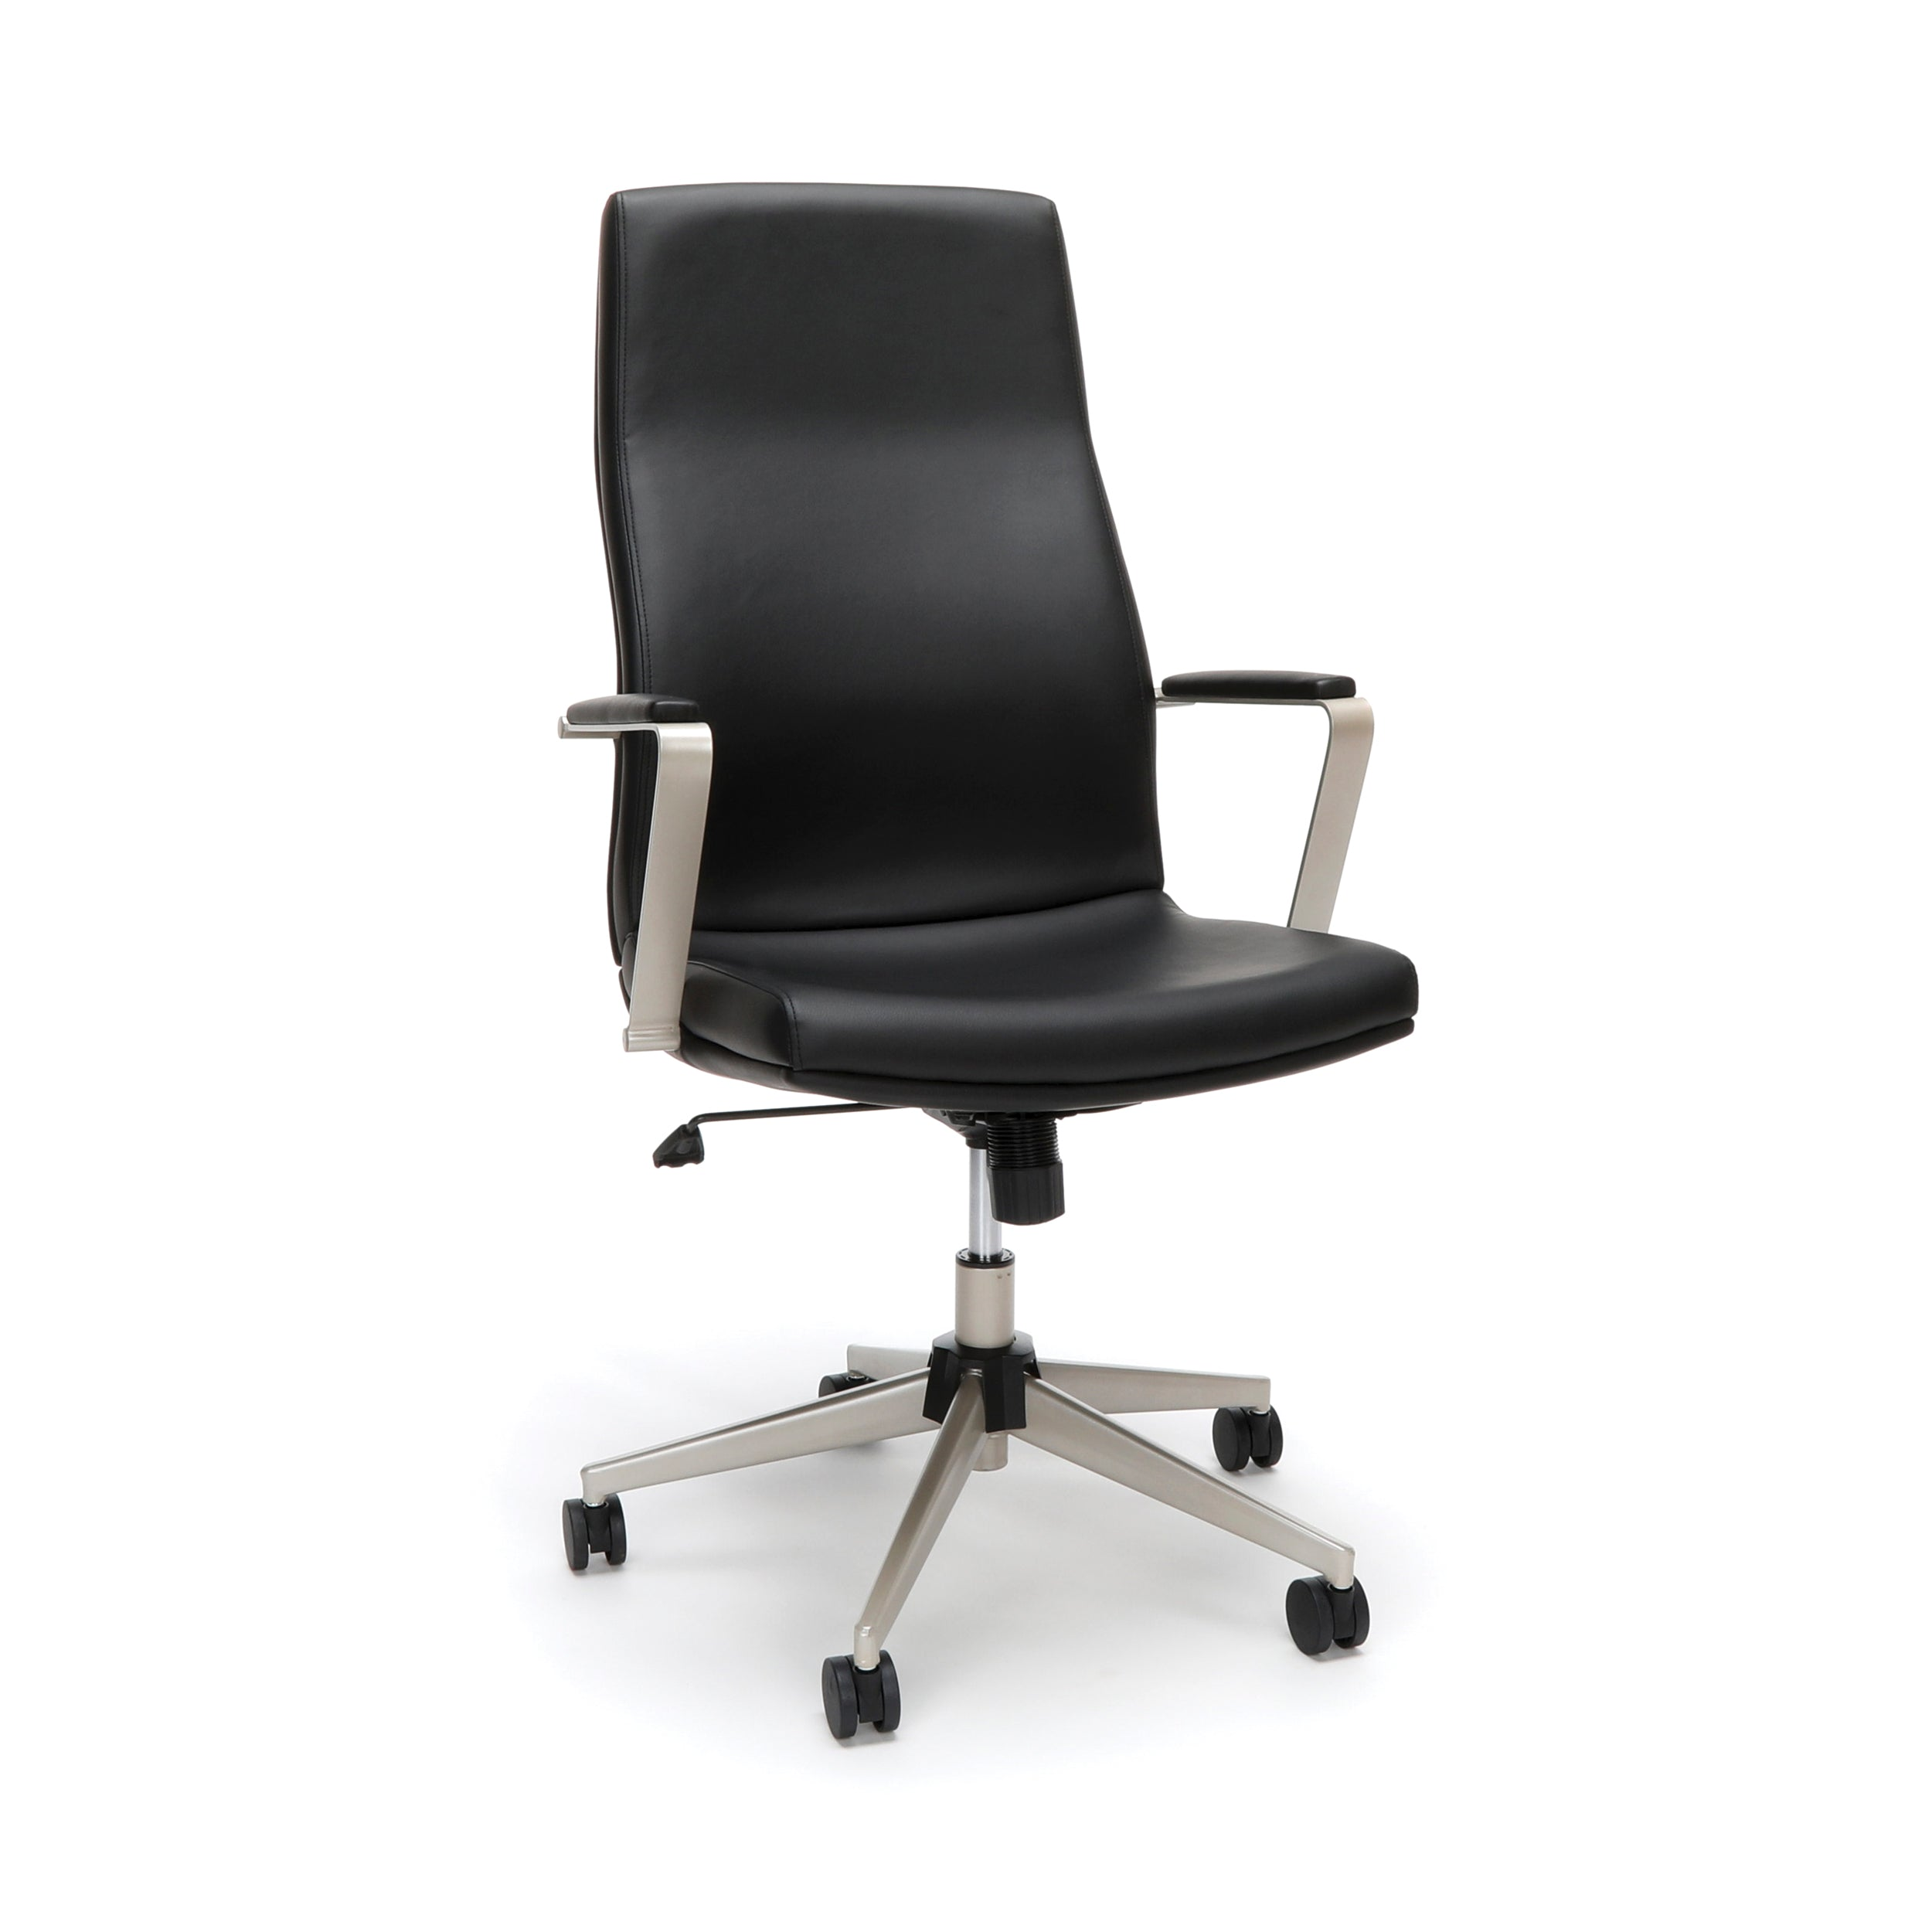 Ofminc Model 567 High Back Bonded Leather Manager Chair